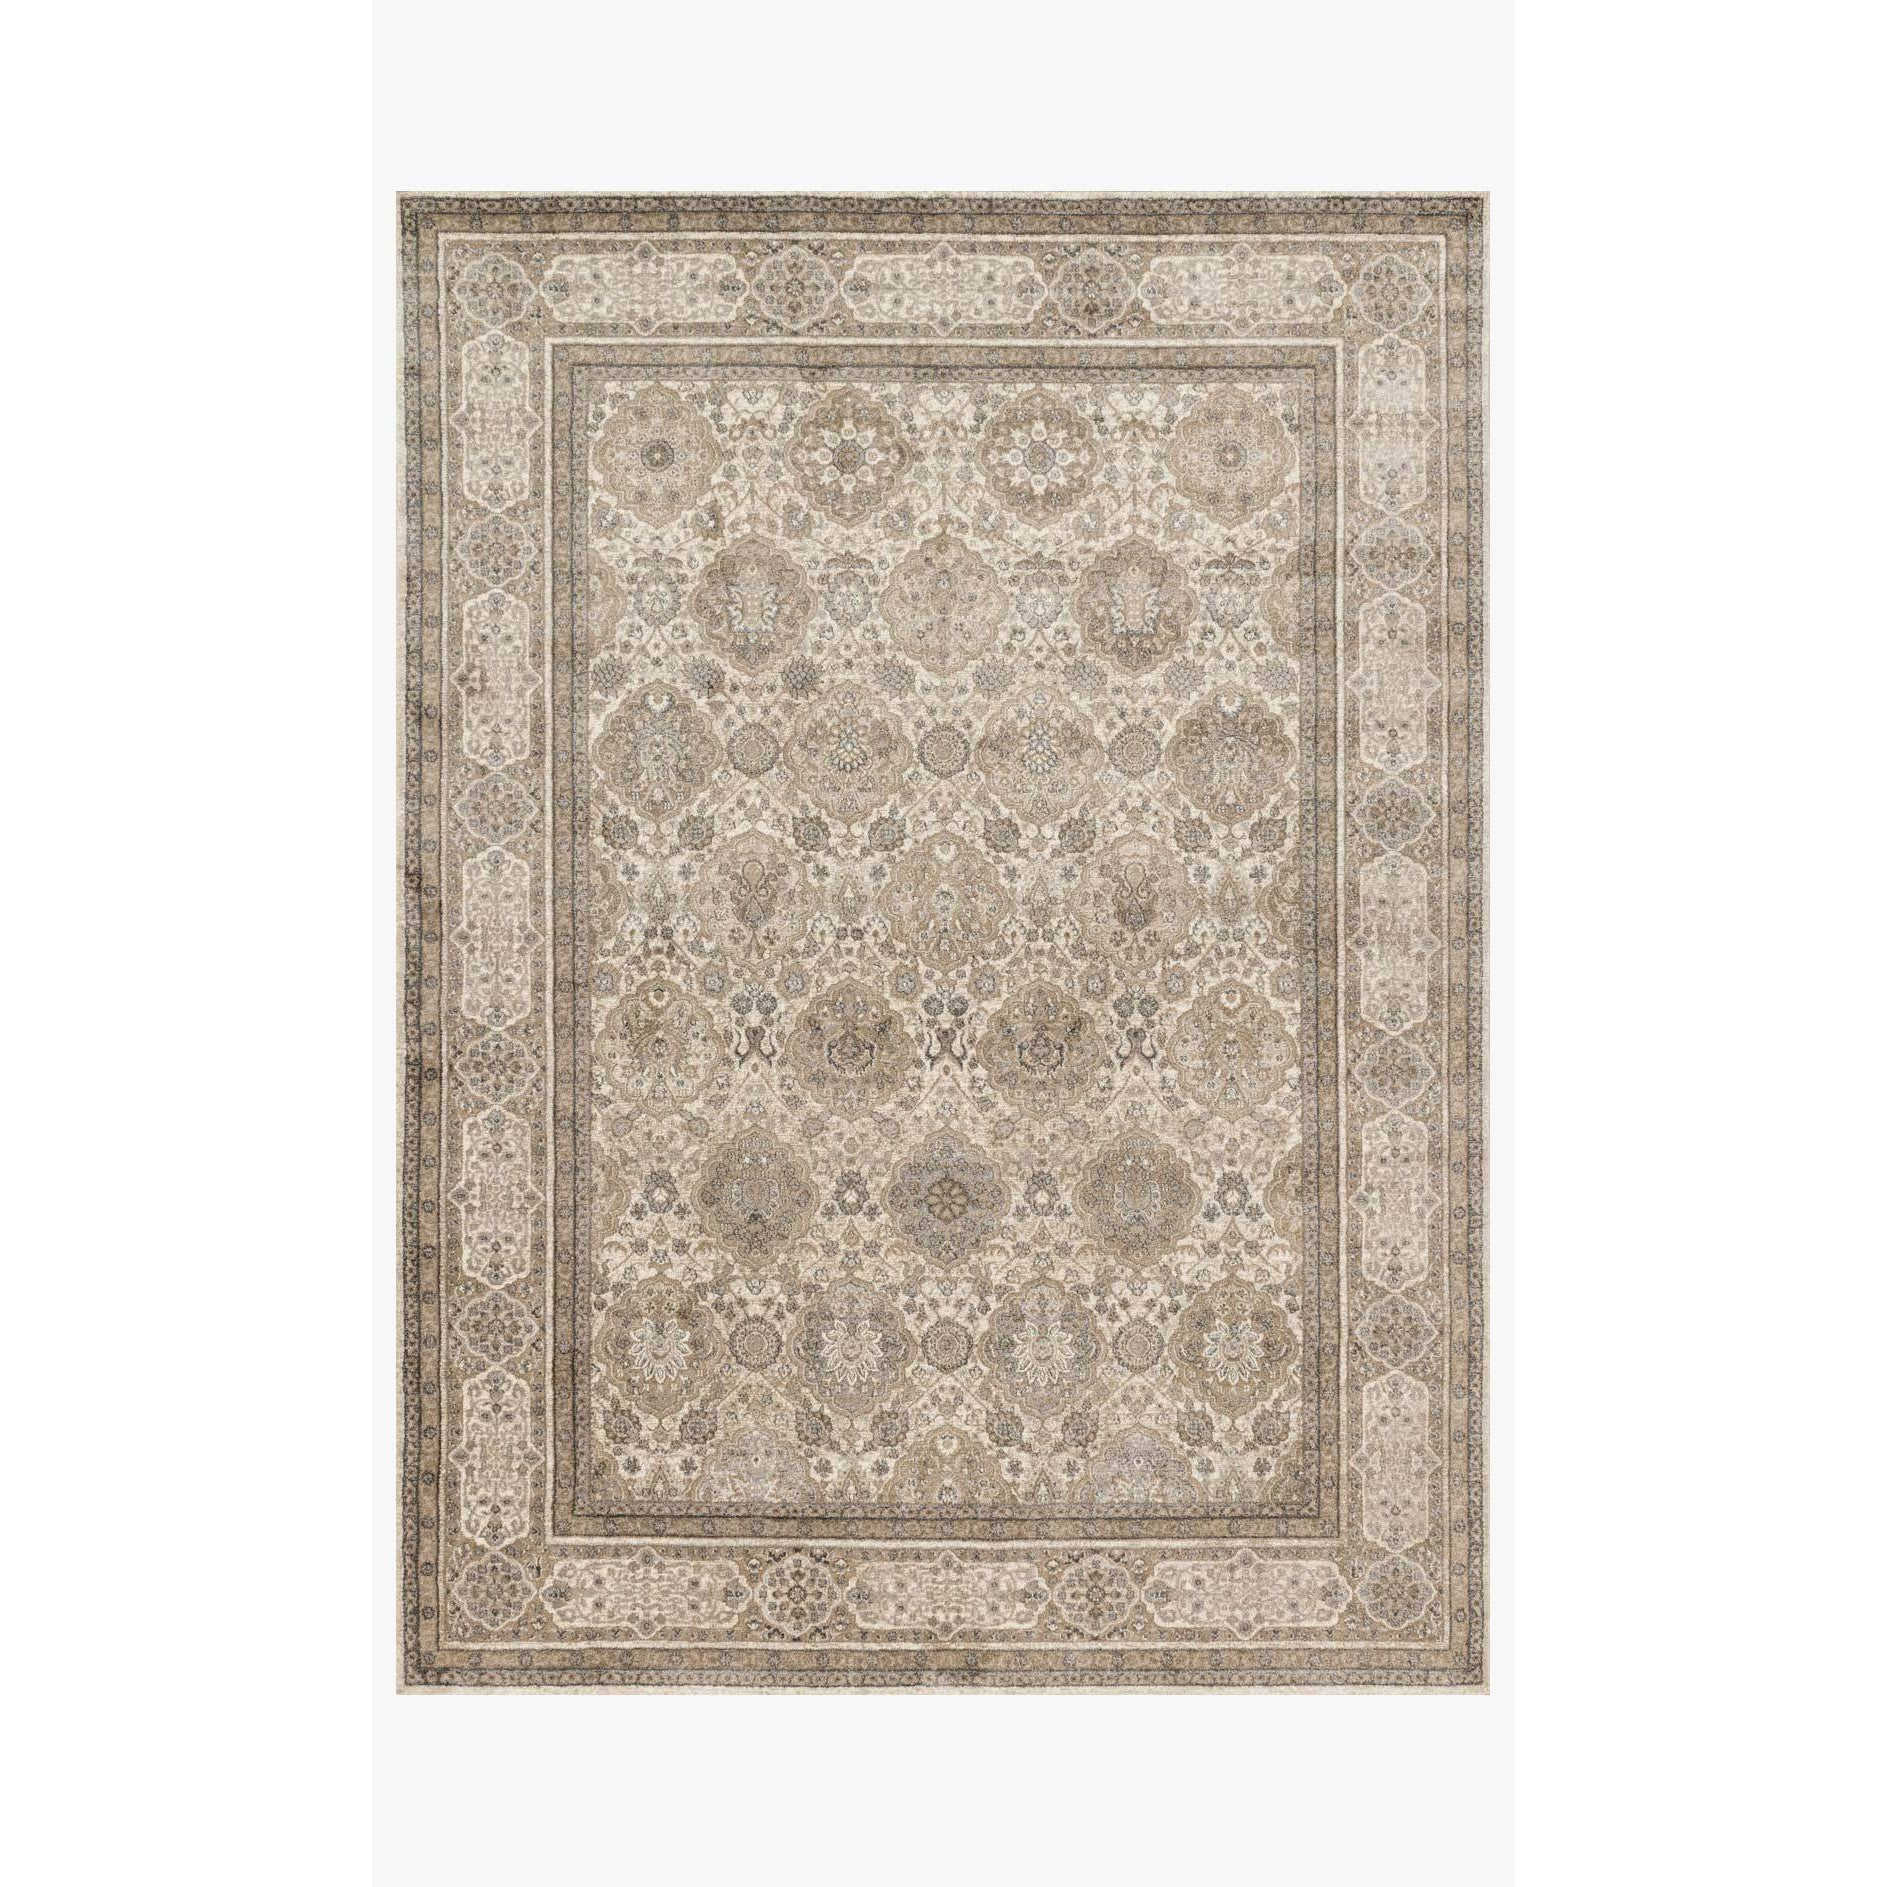 Century Rug by Loloi Rugs - CQ-05 - Sand / Taupe